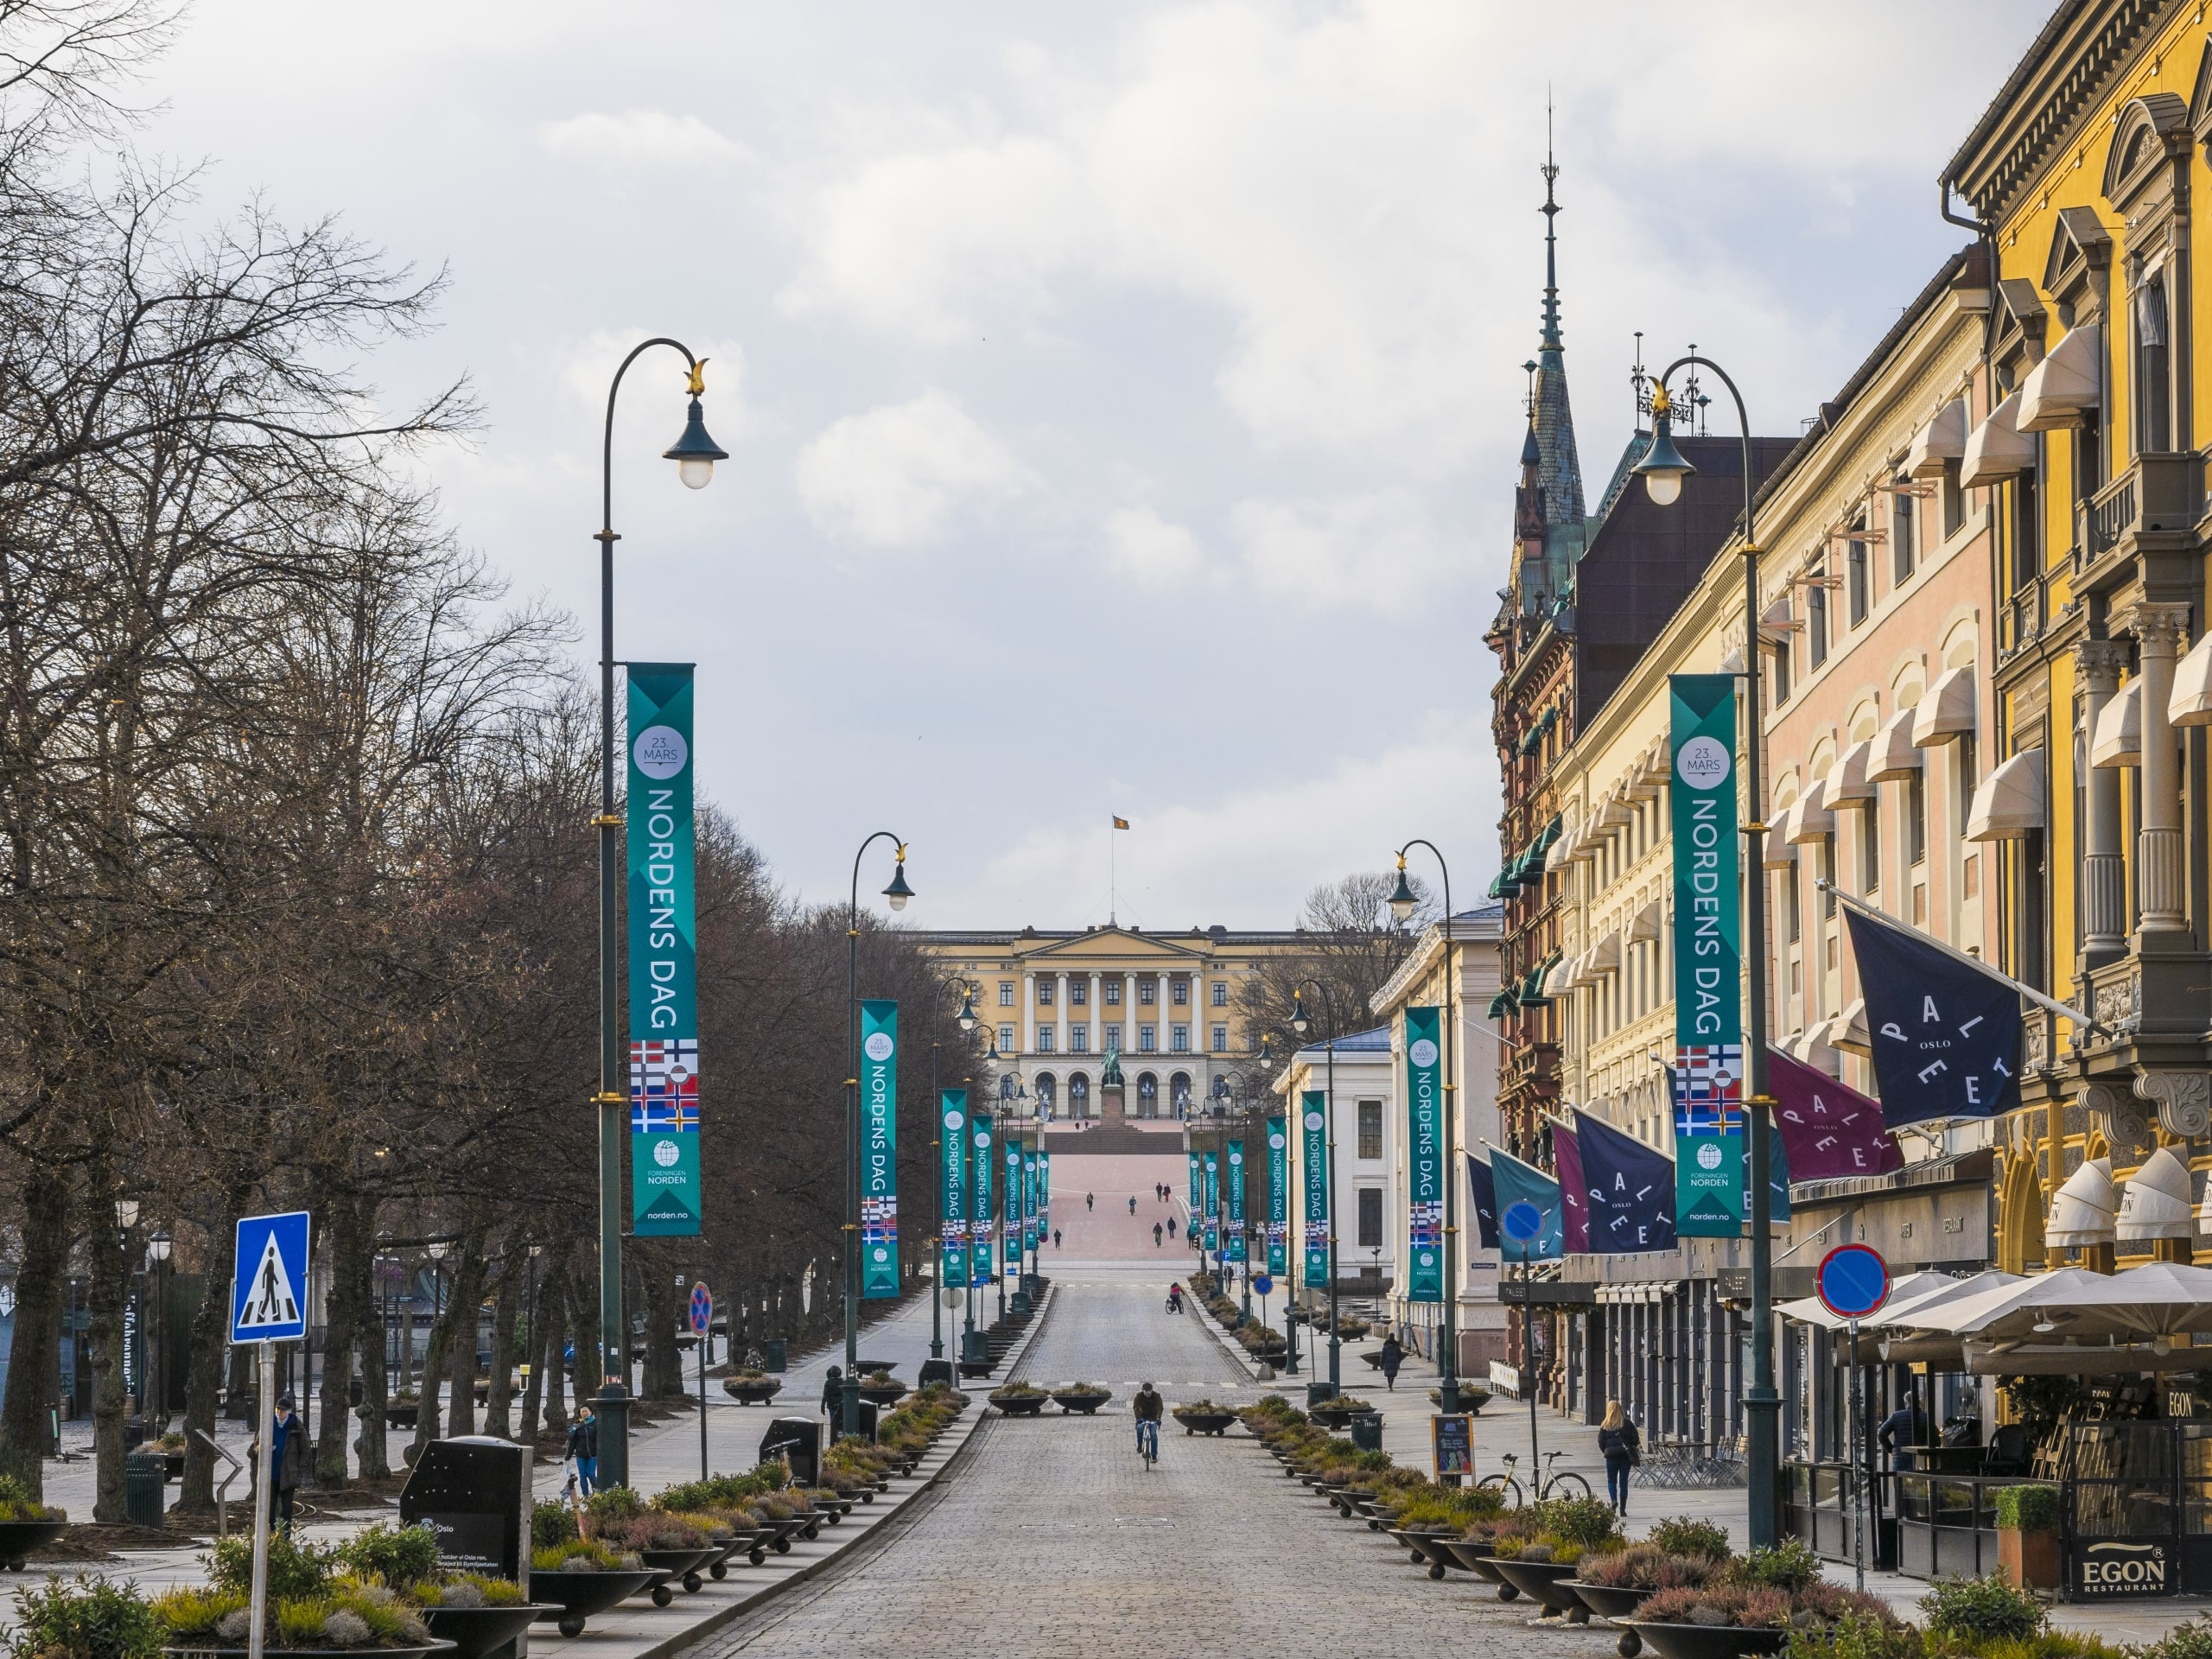 Karl Johan Gate is lined up with numerous shops and attractions